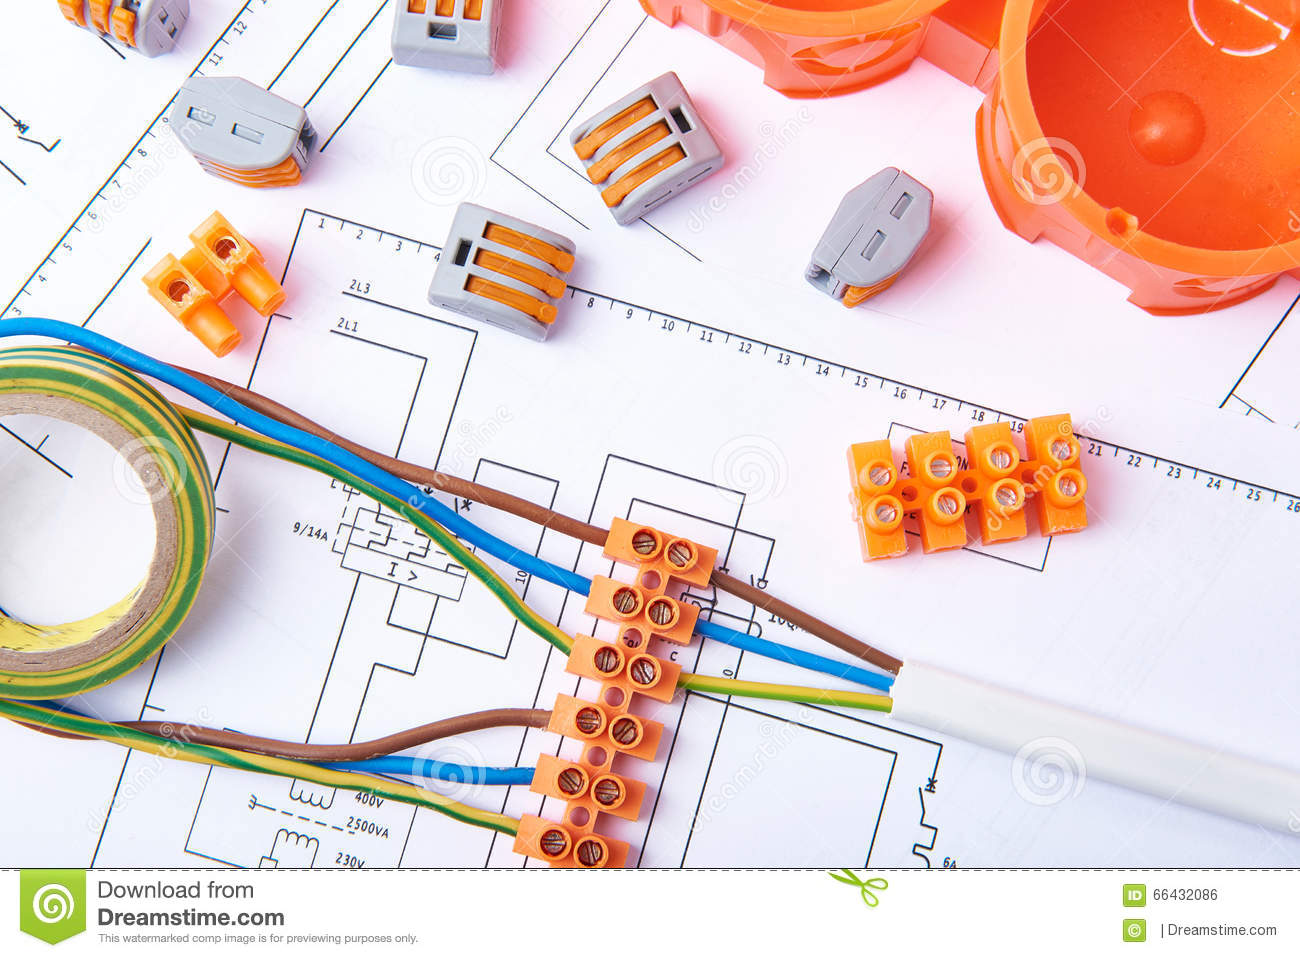 Electrical Connectors With Wires Junction Box And Different Phone Wire Wiring Diagram Materials Used For Jobs In Electricity Many Tools Lying On Diagrams